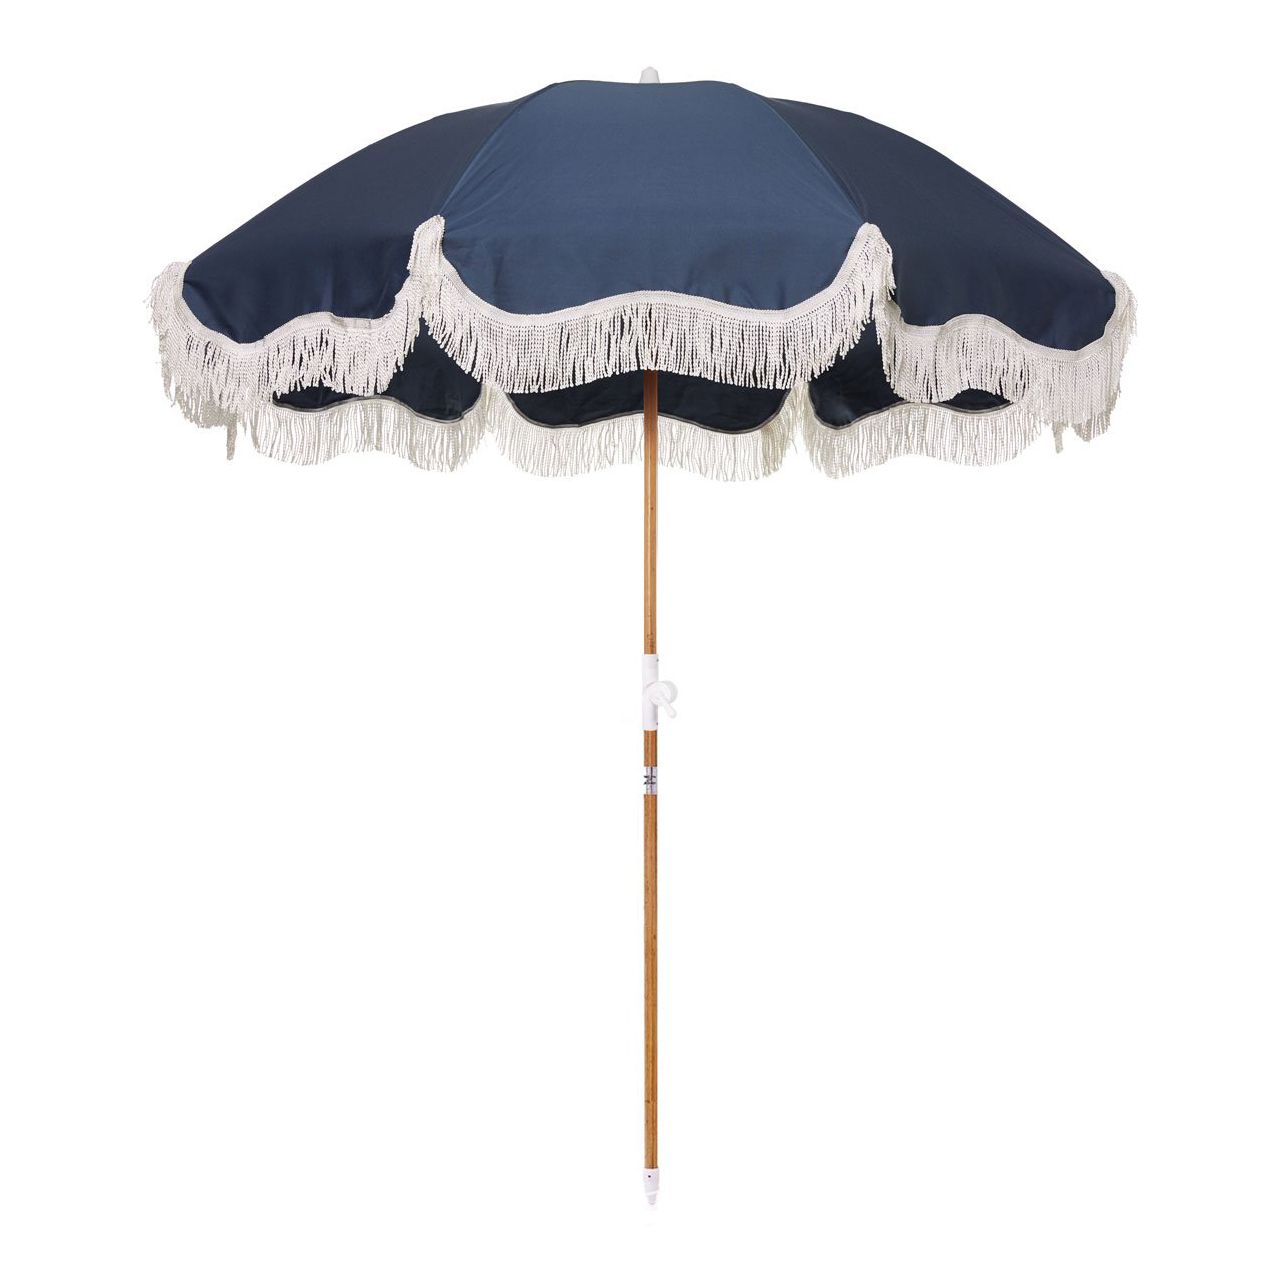 Mother's Day gifts ideas - Business & Pleasure Holiday Beach Umbrella